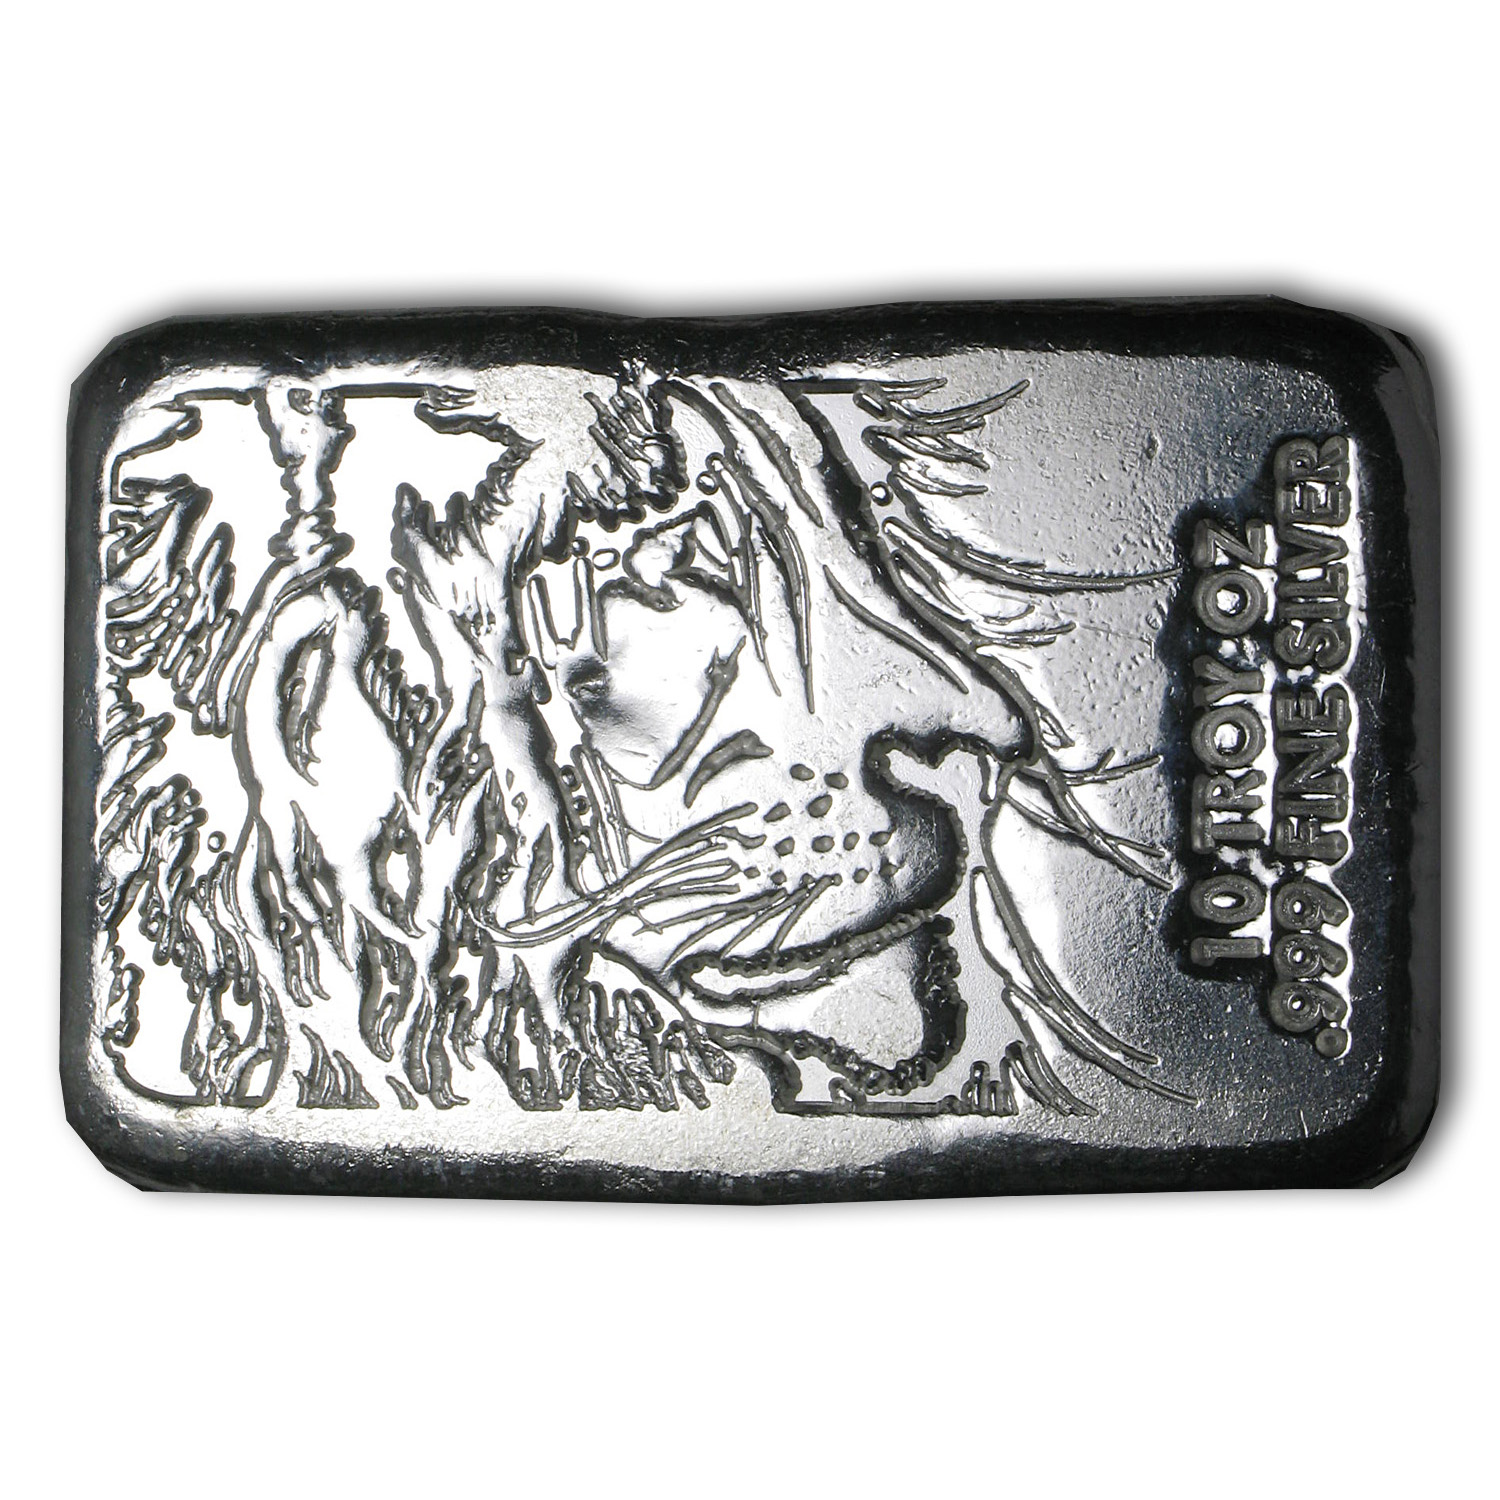 10 oz Silver Bars - Lion (Atlantis Mint)